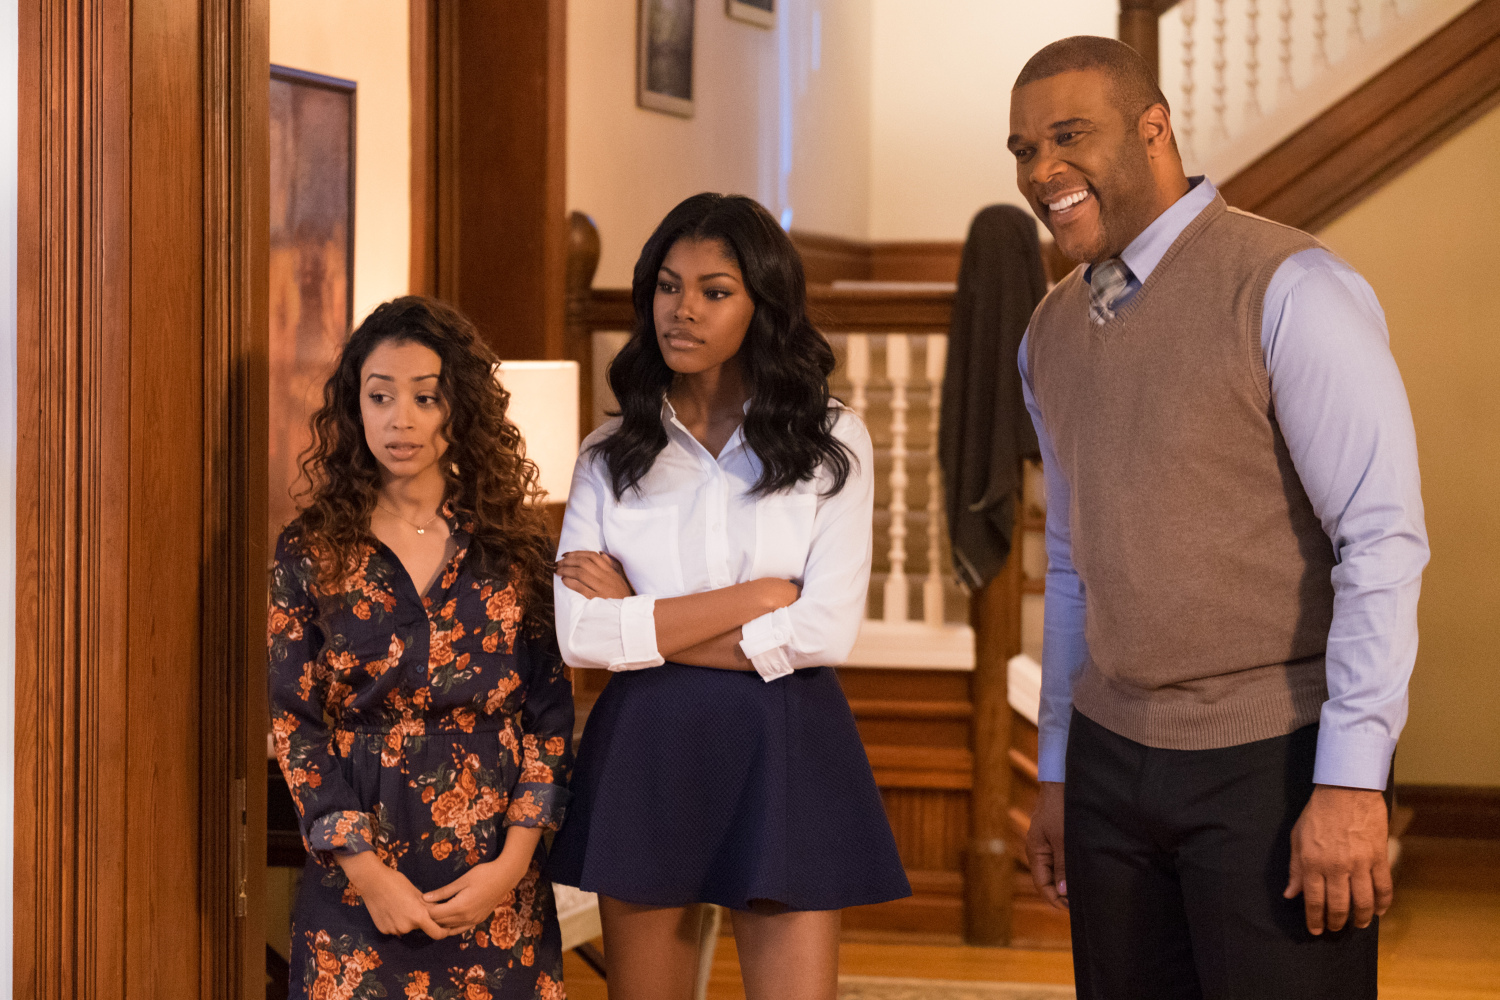 Tyler Perry as Madea's son Brian along with his daughter Diamond White (c) and her friend Liza Koshy (l) in Boo! A Madea Halloween (2016)